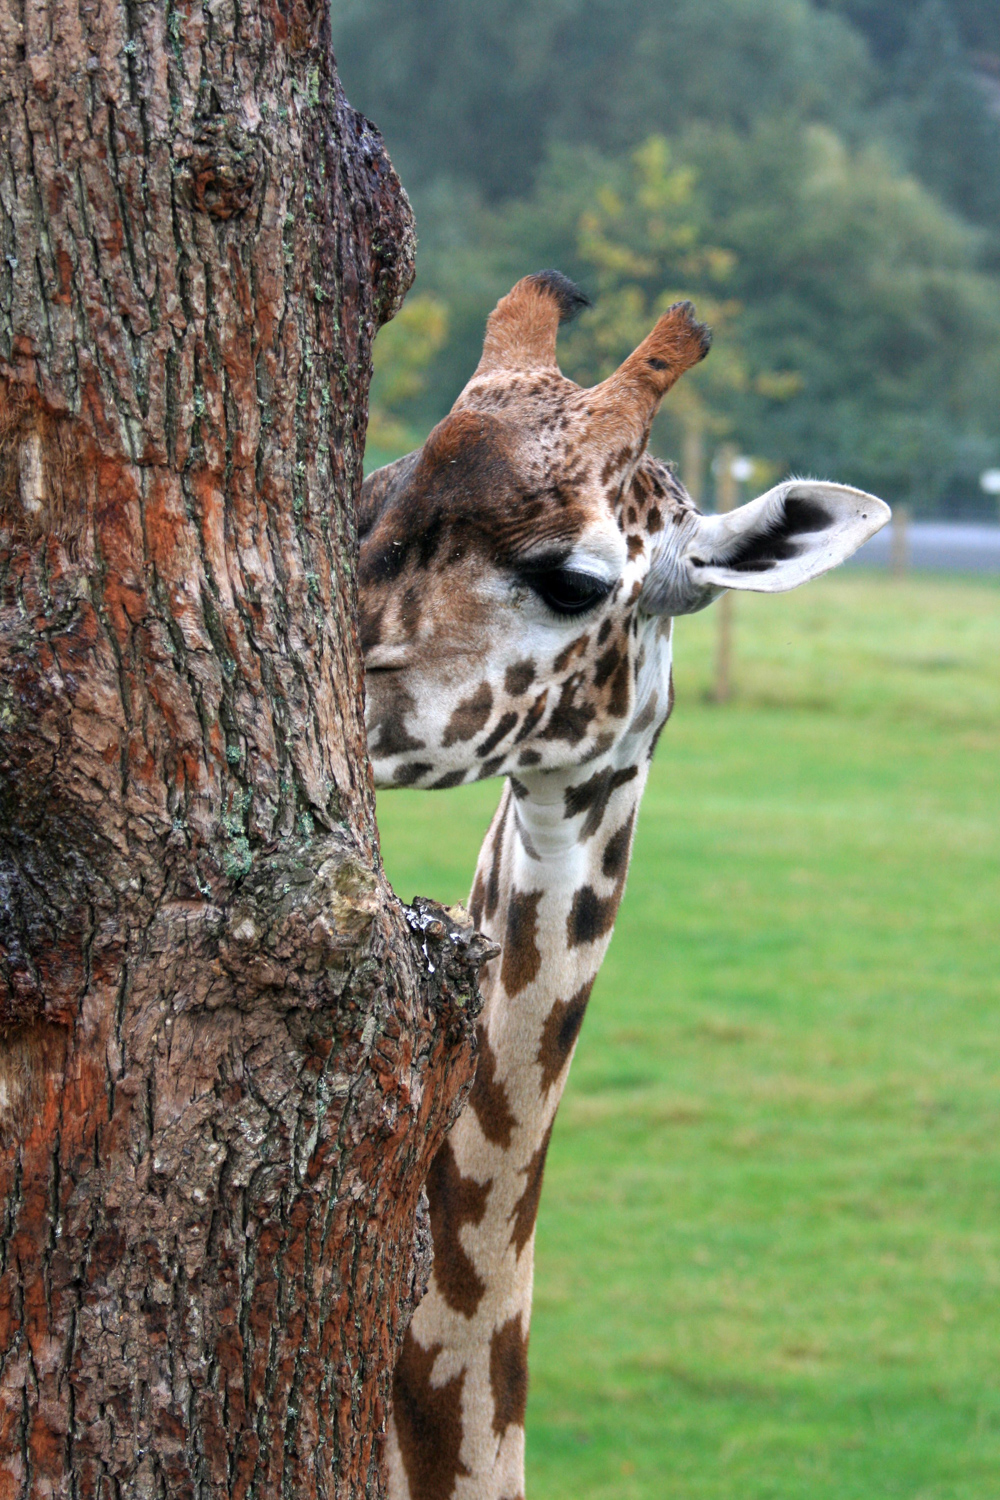 The first photo I ever posted to my Photoblog, taken at Marwell Zoo. Not great art, but you've got to start somewhere!